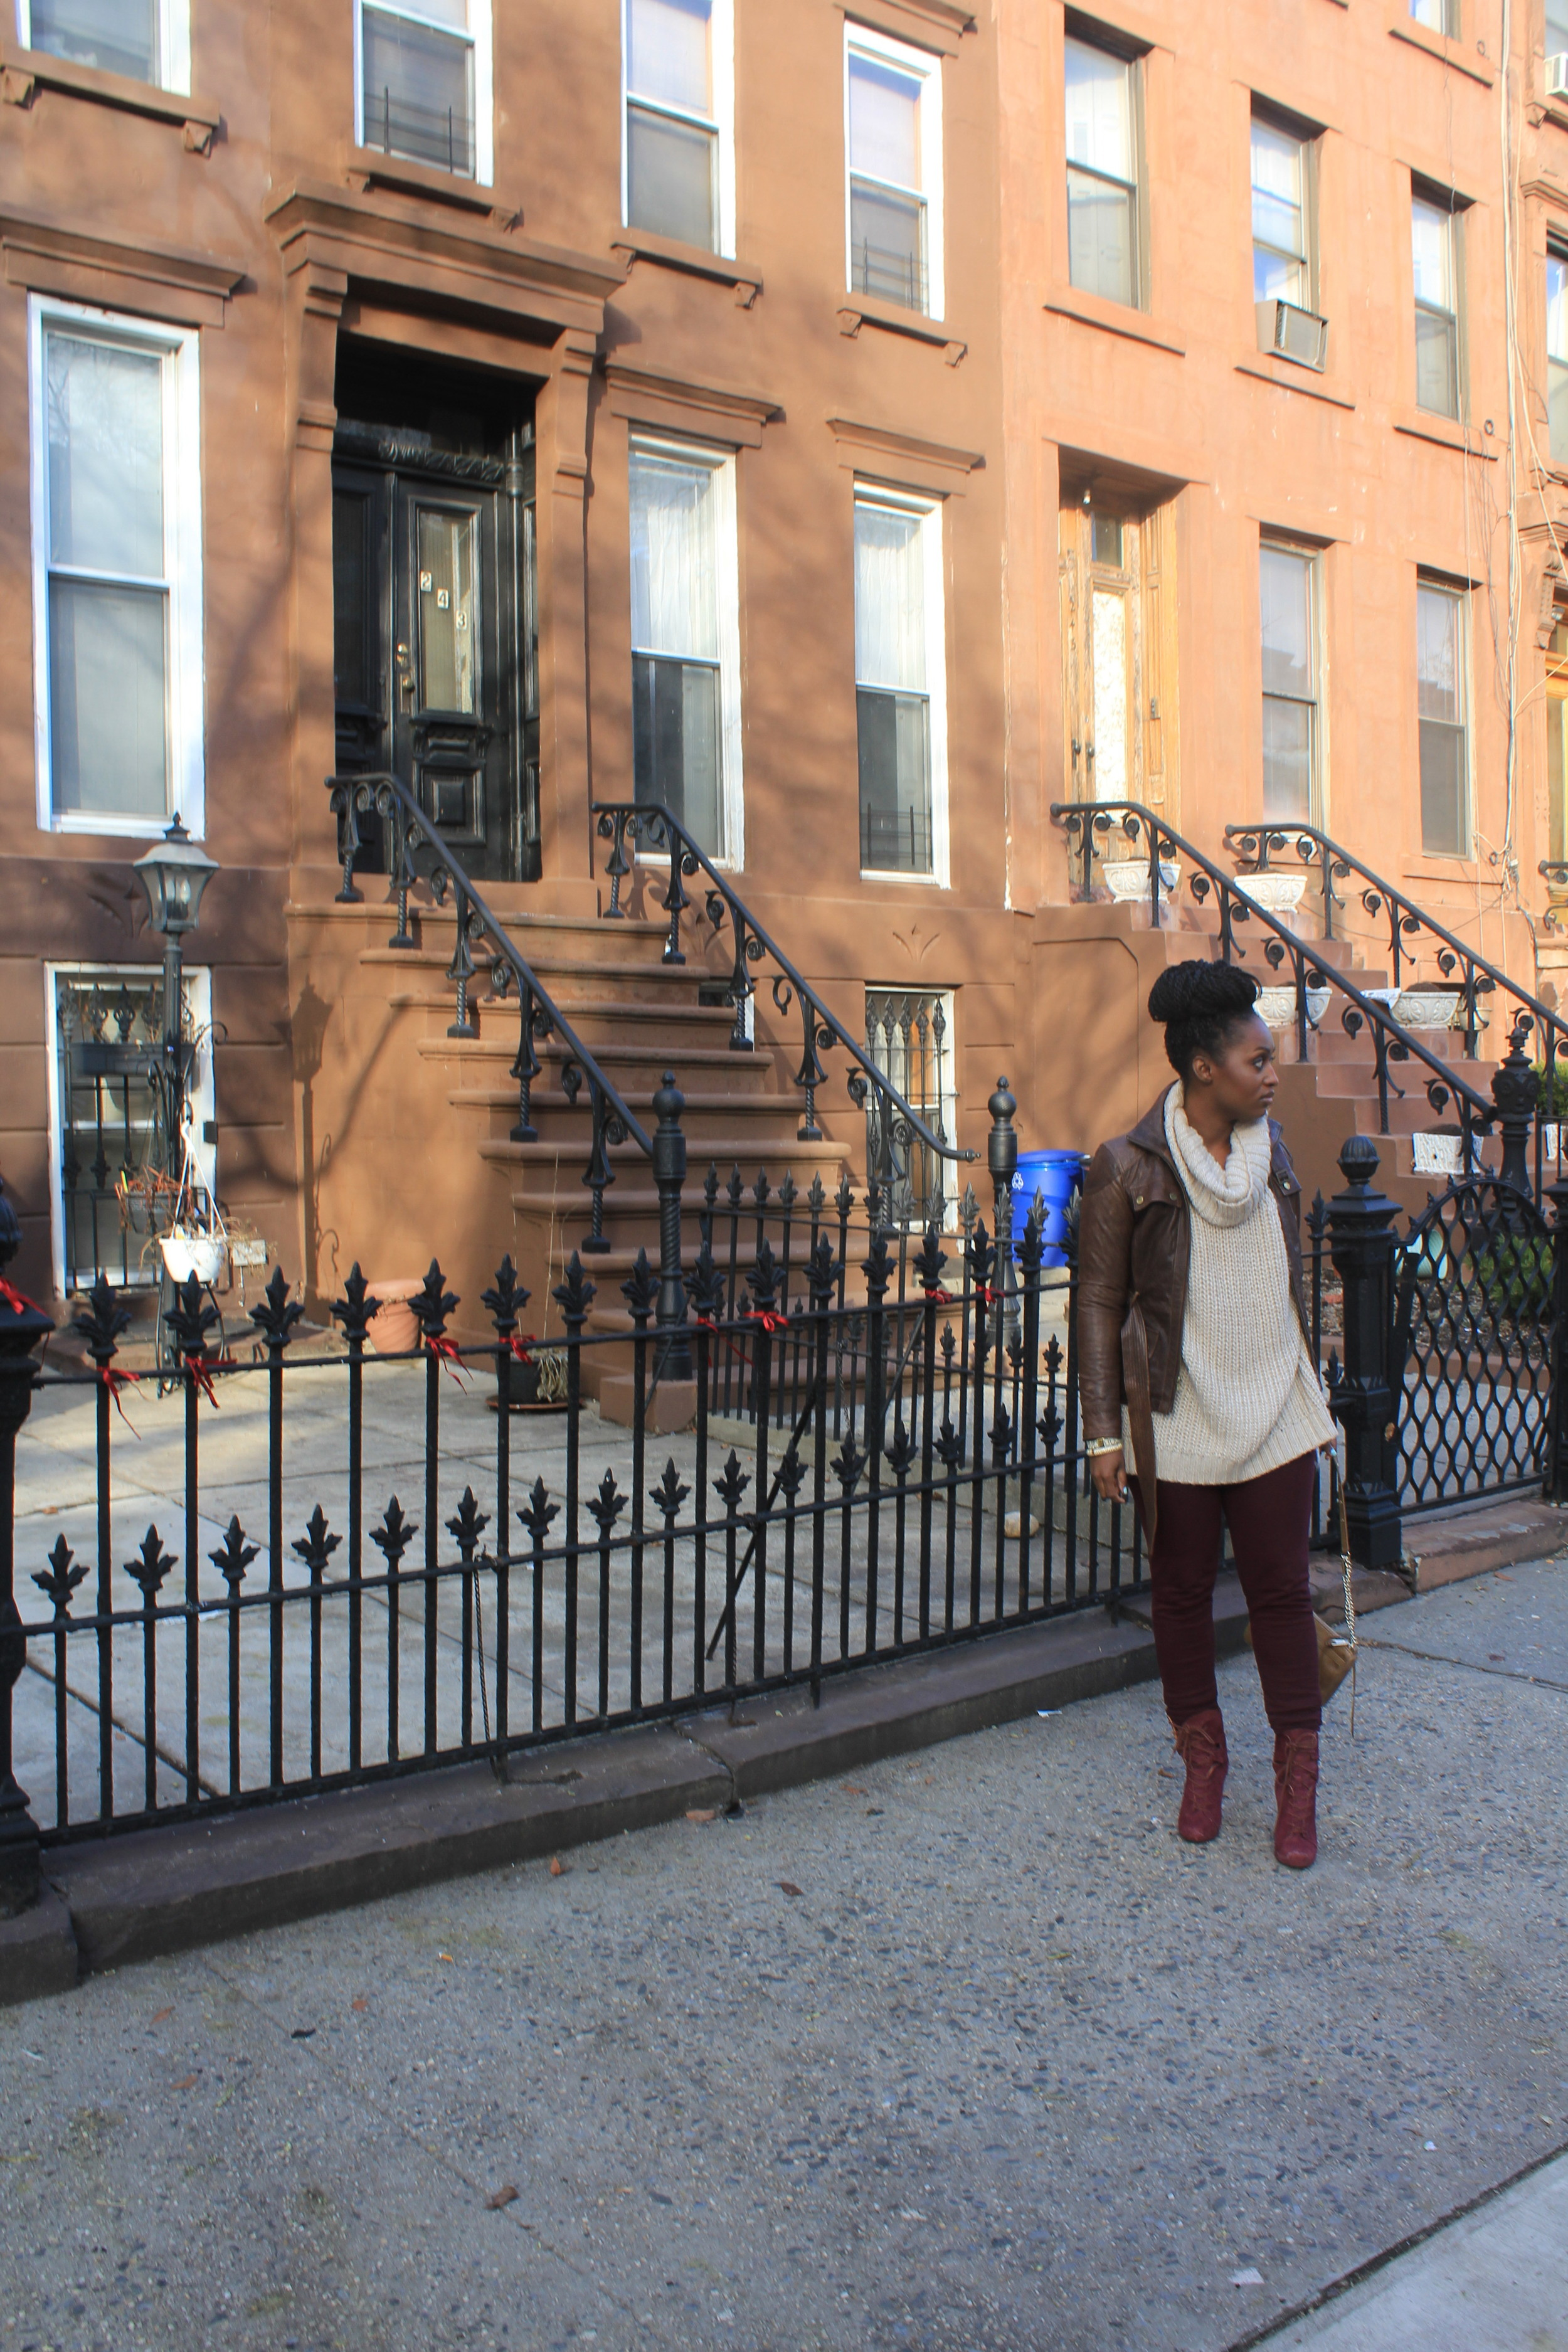 Me near some brownstones